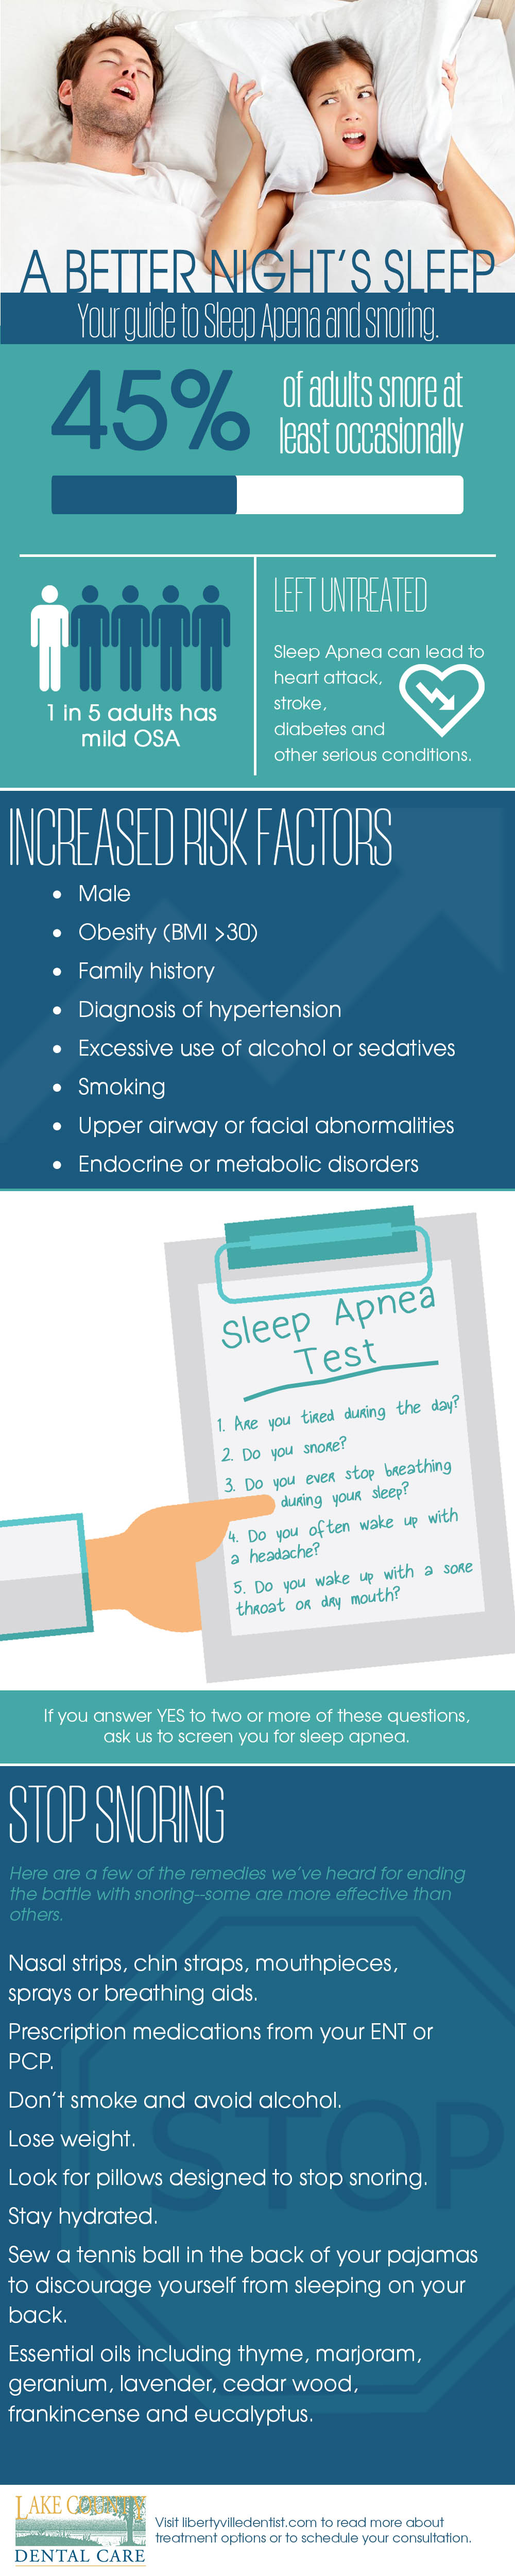 Left untreated sleep apnea can be deadly--infographic featuring stats, risk factors, remedies and a sleep apnea test.